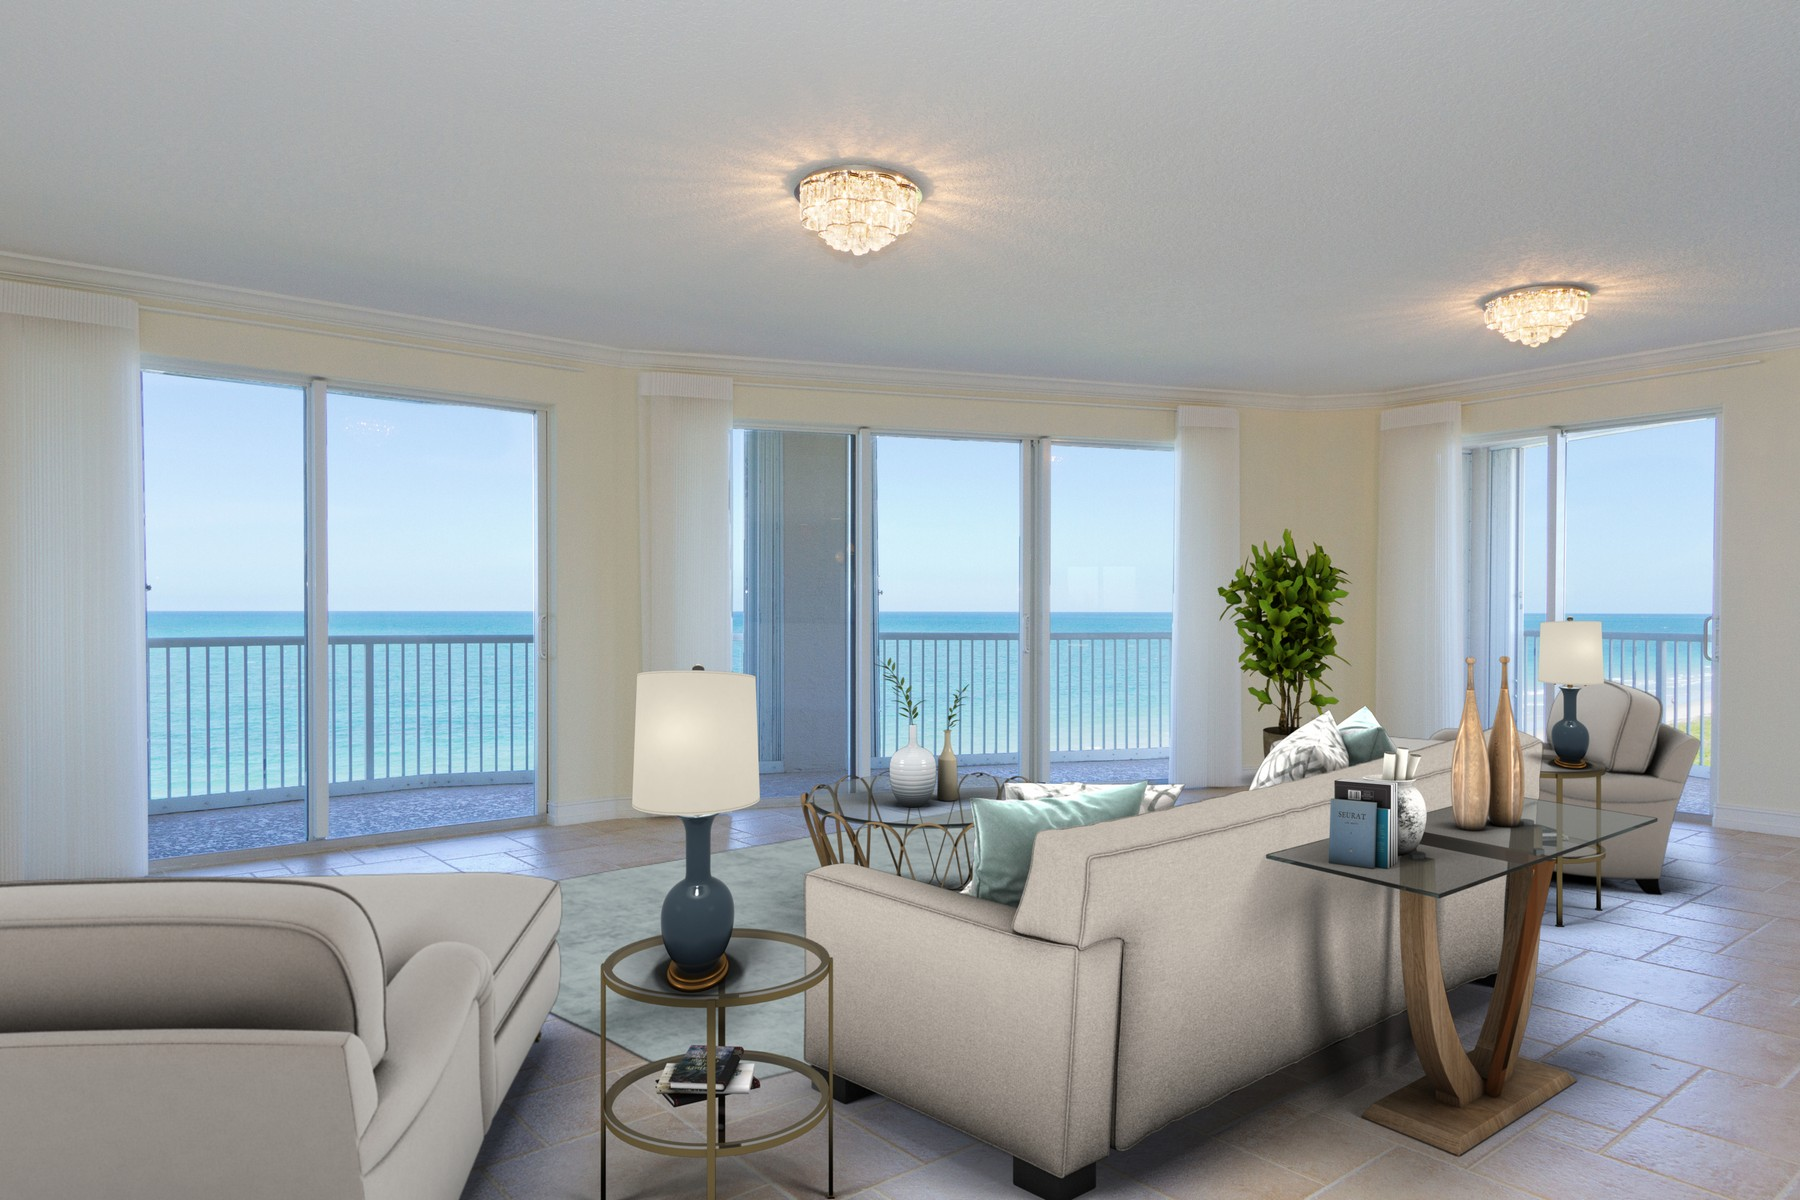 Experience Sea Side Elegance  in this Seveth Floor Condo! 4160 N Highway A1A #707A Hutchinson Island, Florida 34949 Estados Unidos